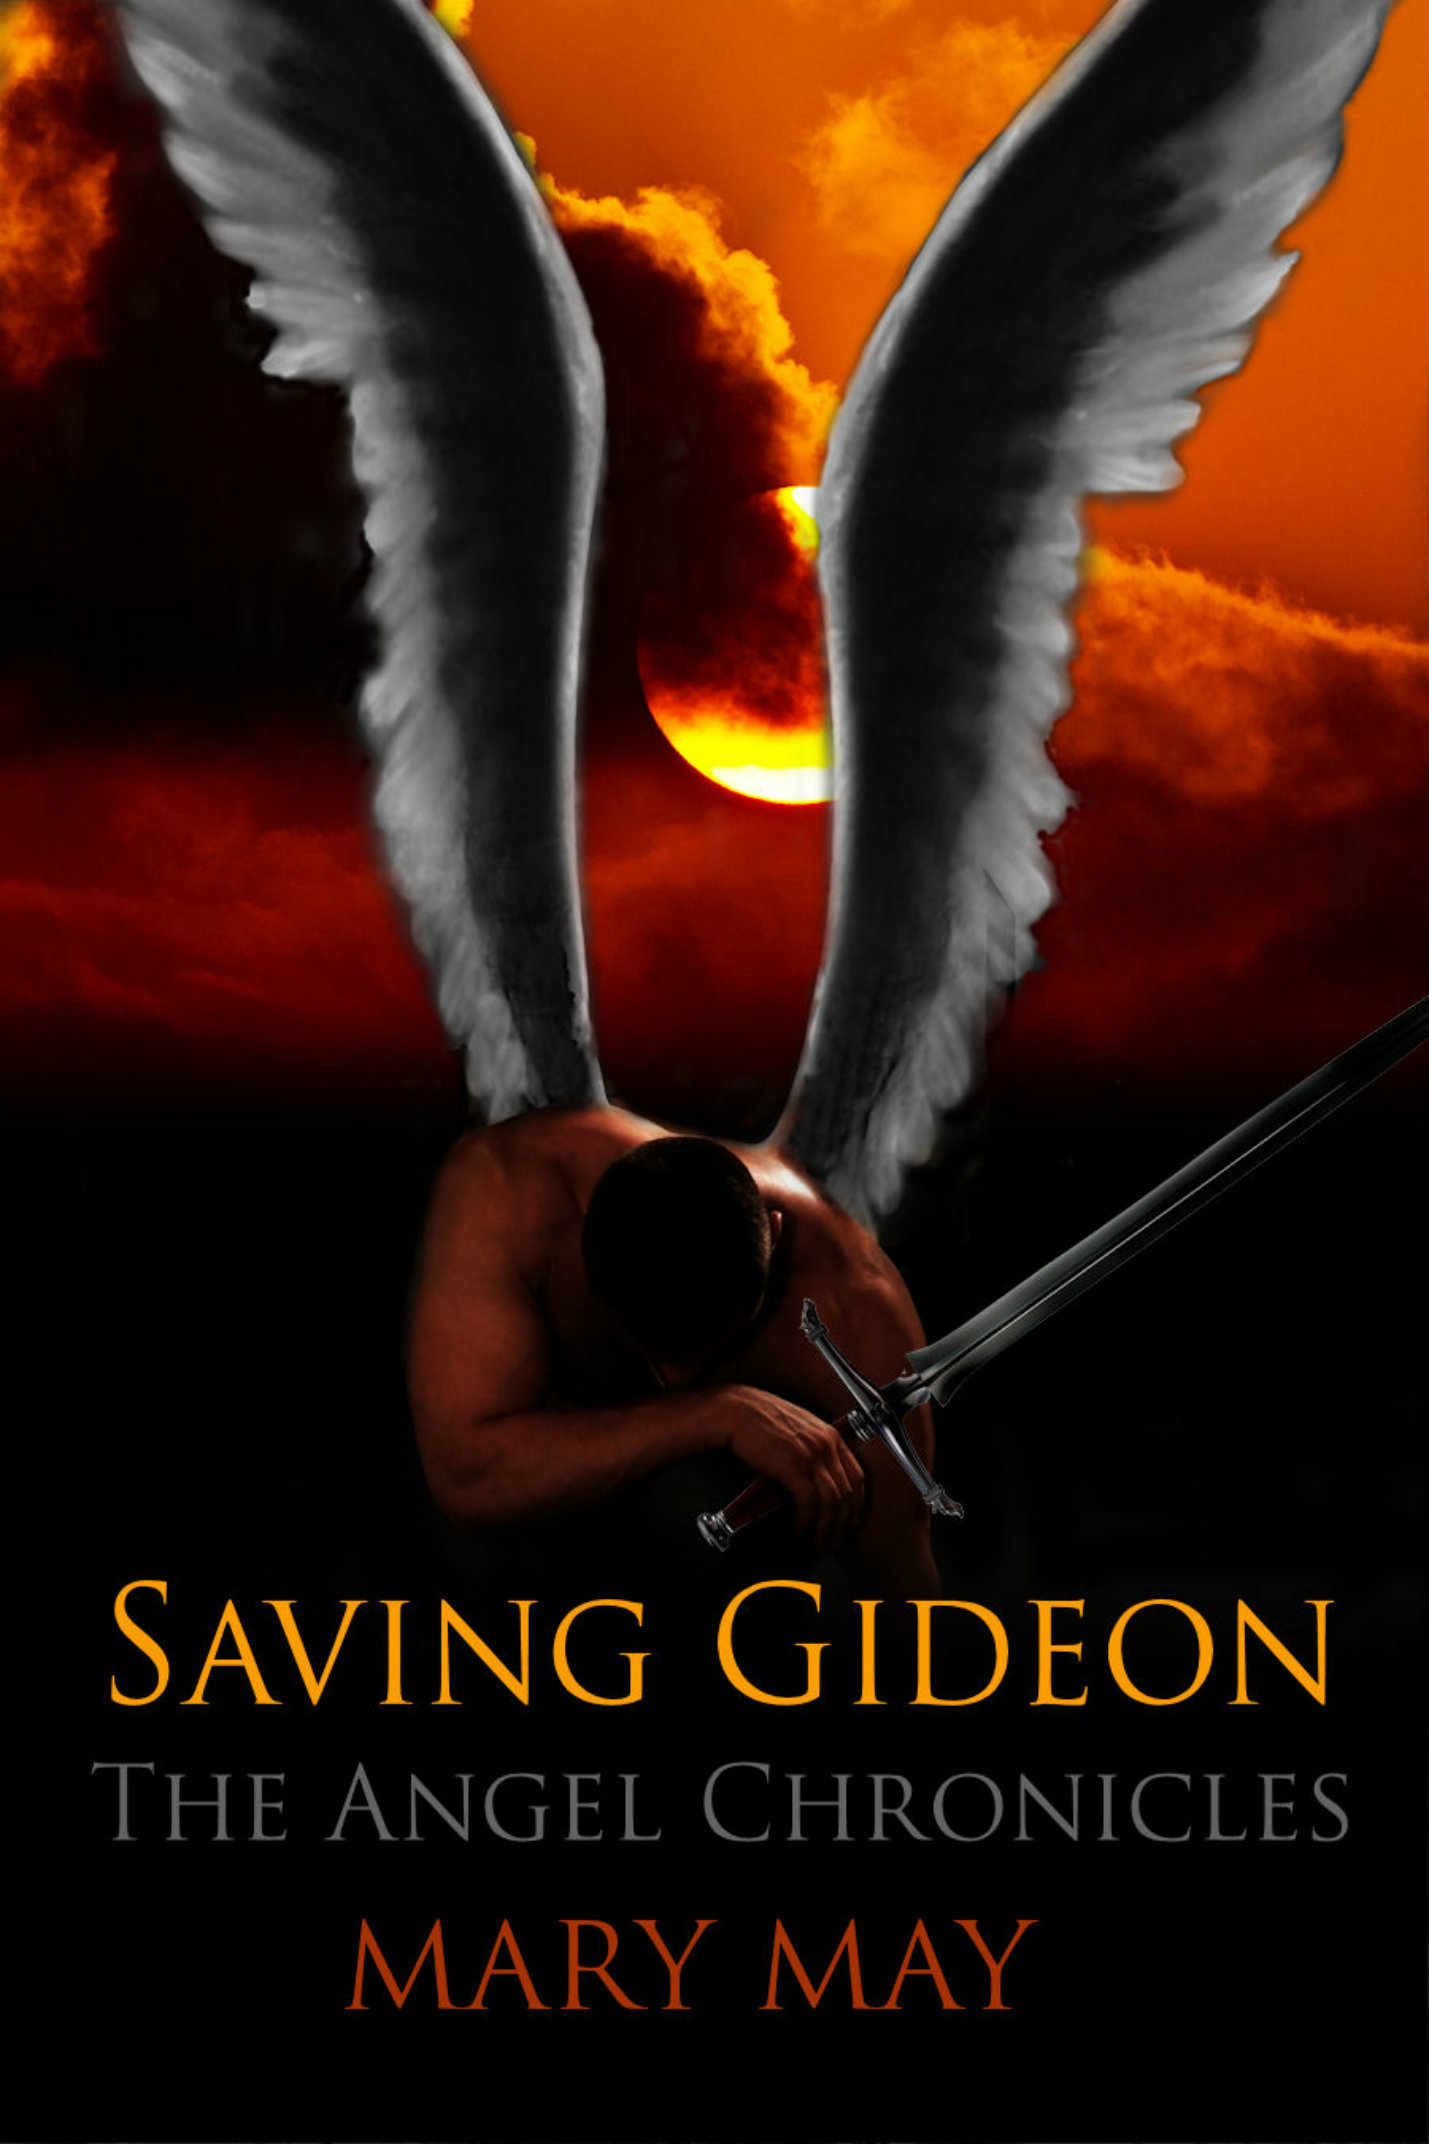 Saving Gideon (The Angel Chronicles #1)